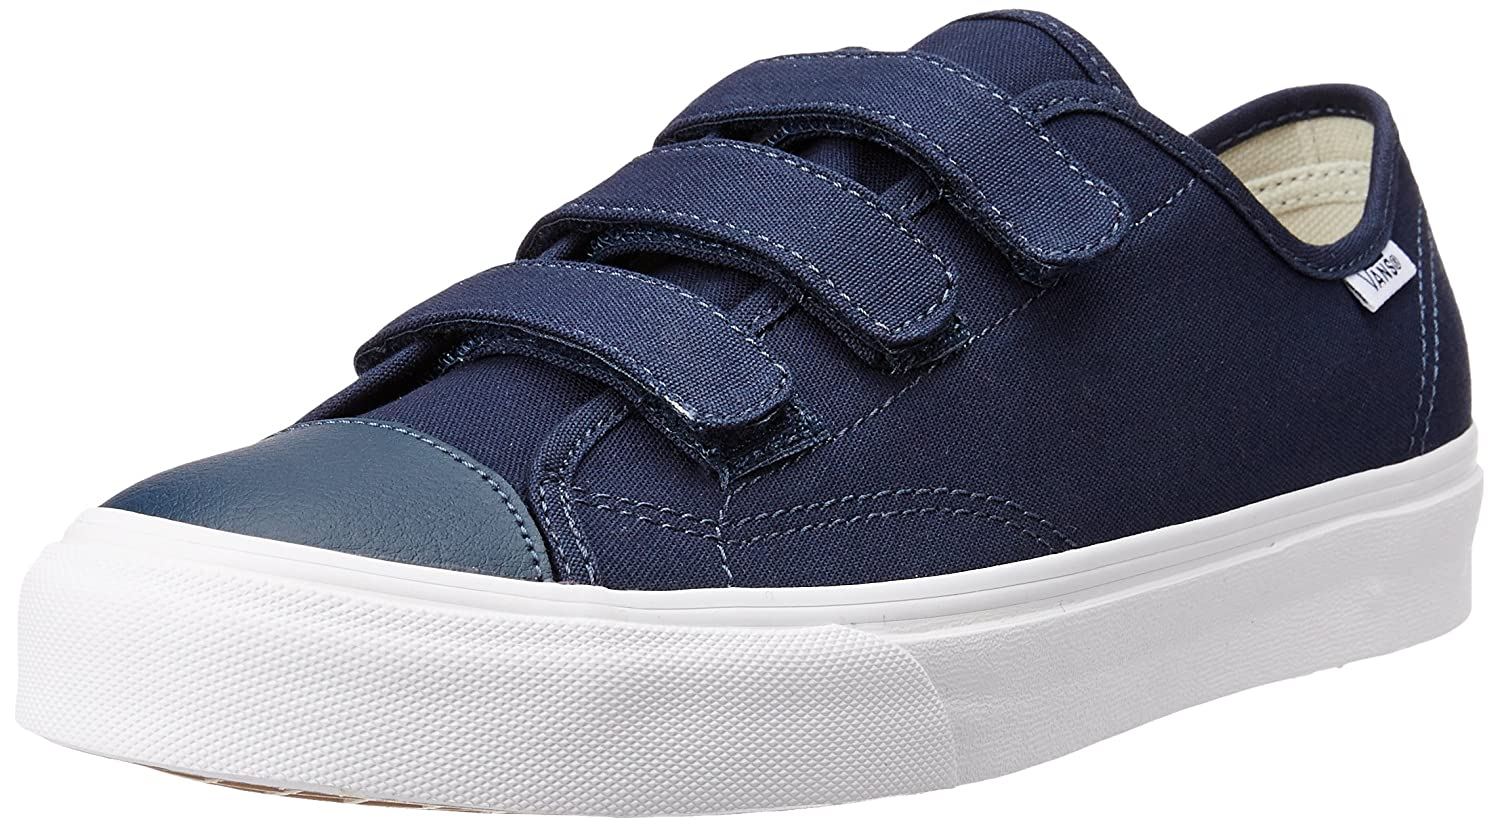 1ceb1067af2 Vans Unisex Prison Issue Sneakers  Buy Online at Low Prices in India -  Amazon.in